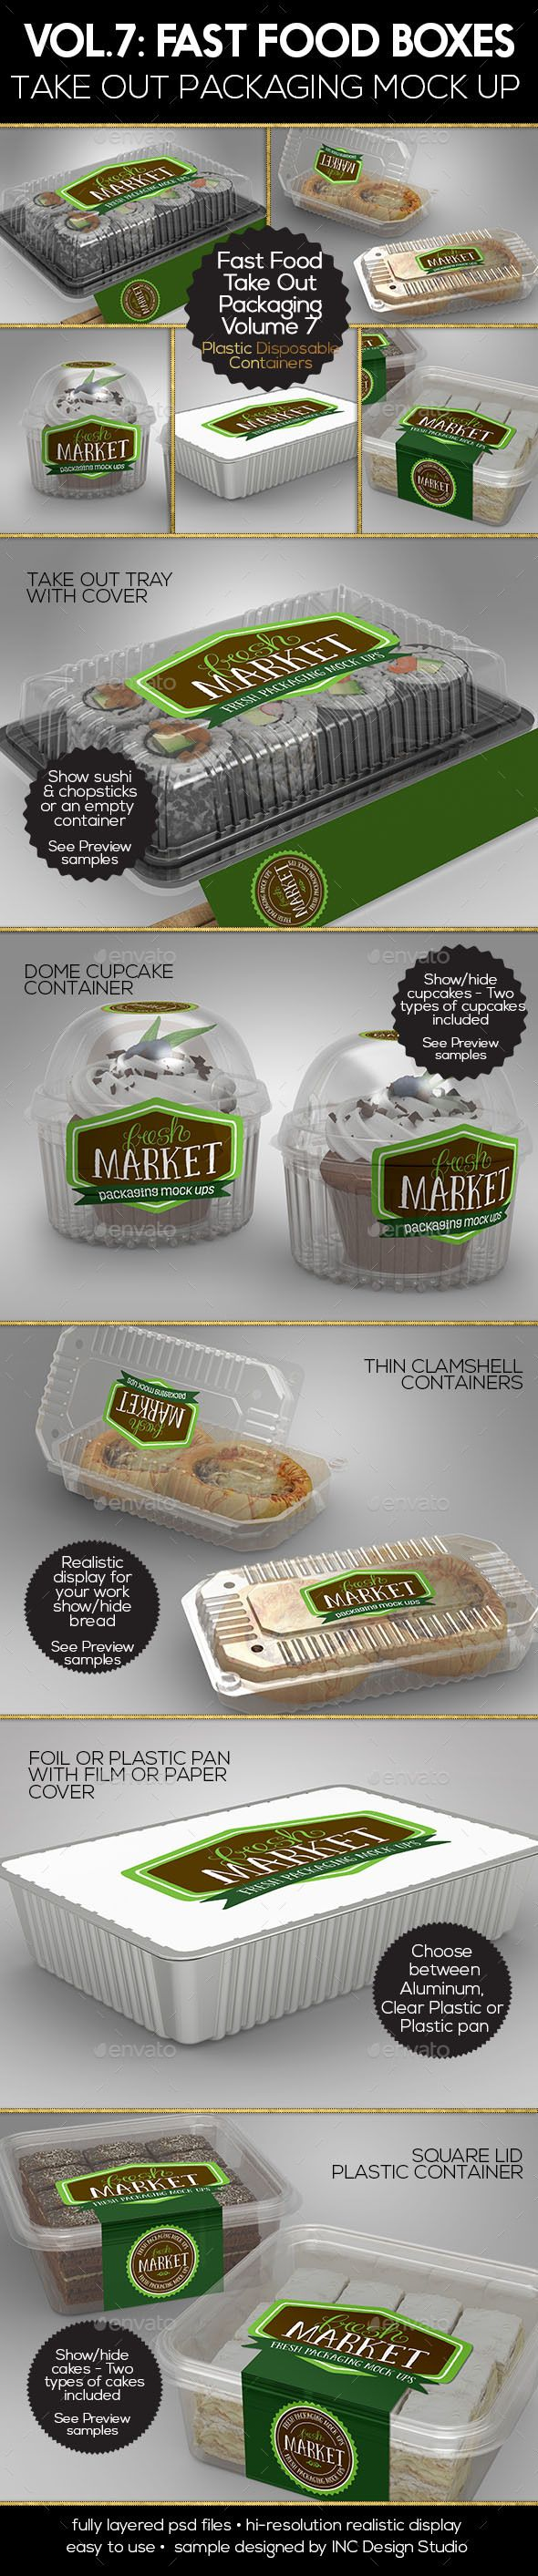 Fast Food Boxes Vol.7:Take Out Packaging Mock Ups - Food and Drink Packaging